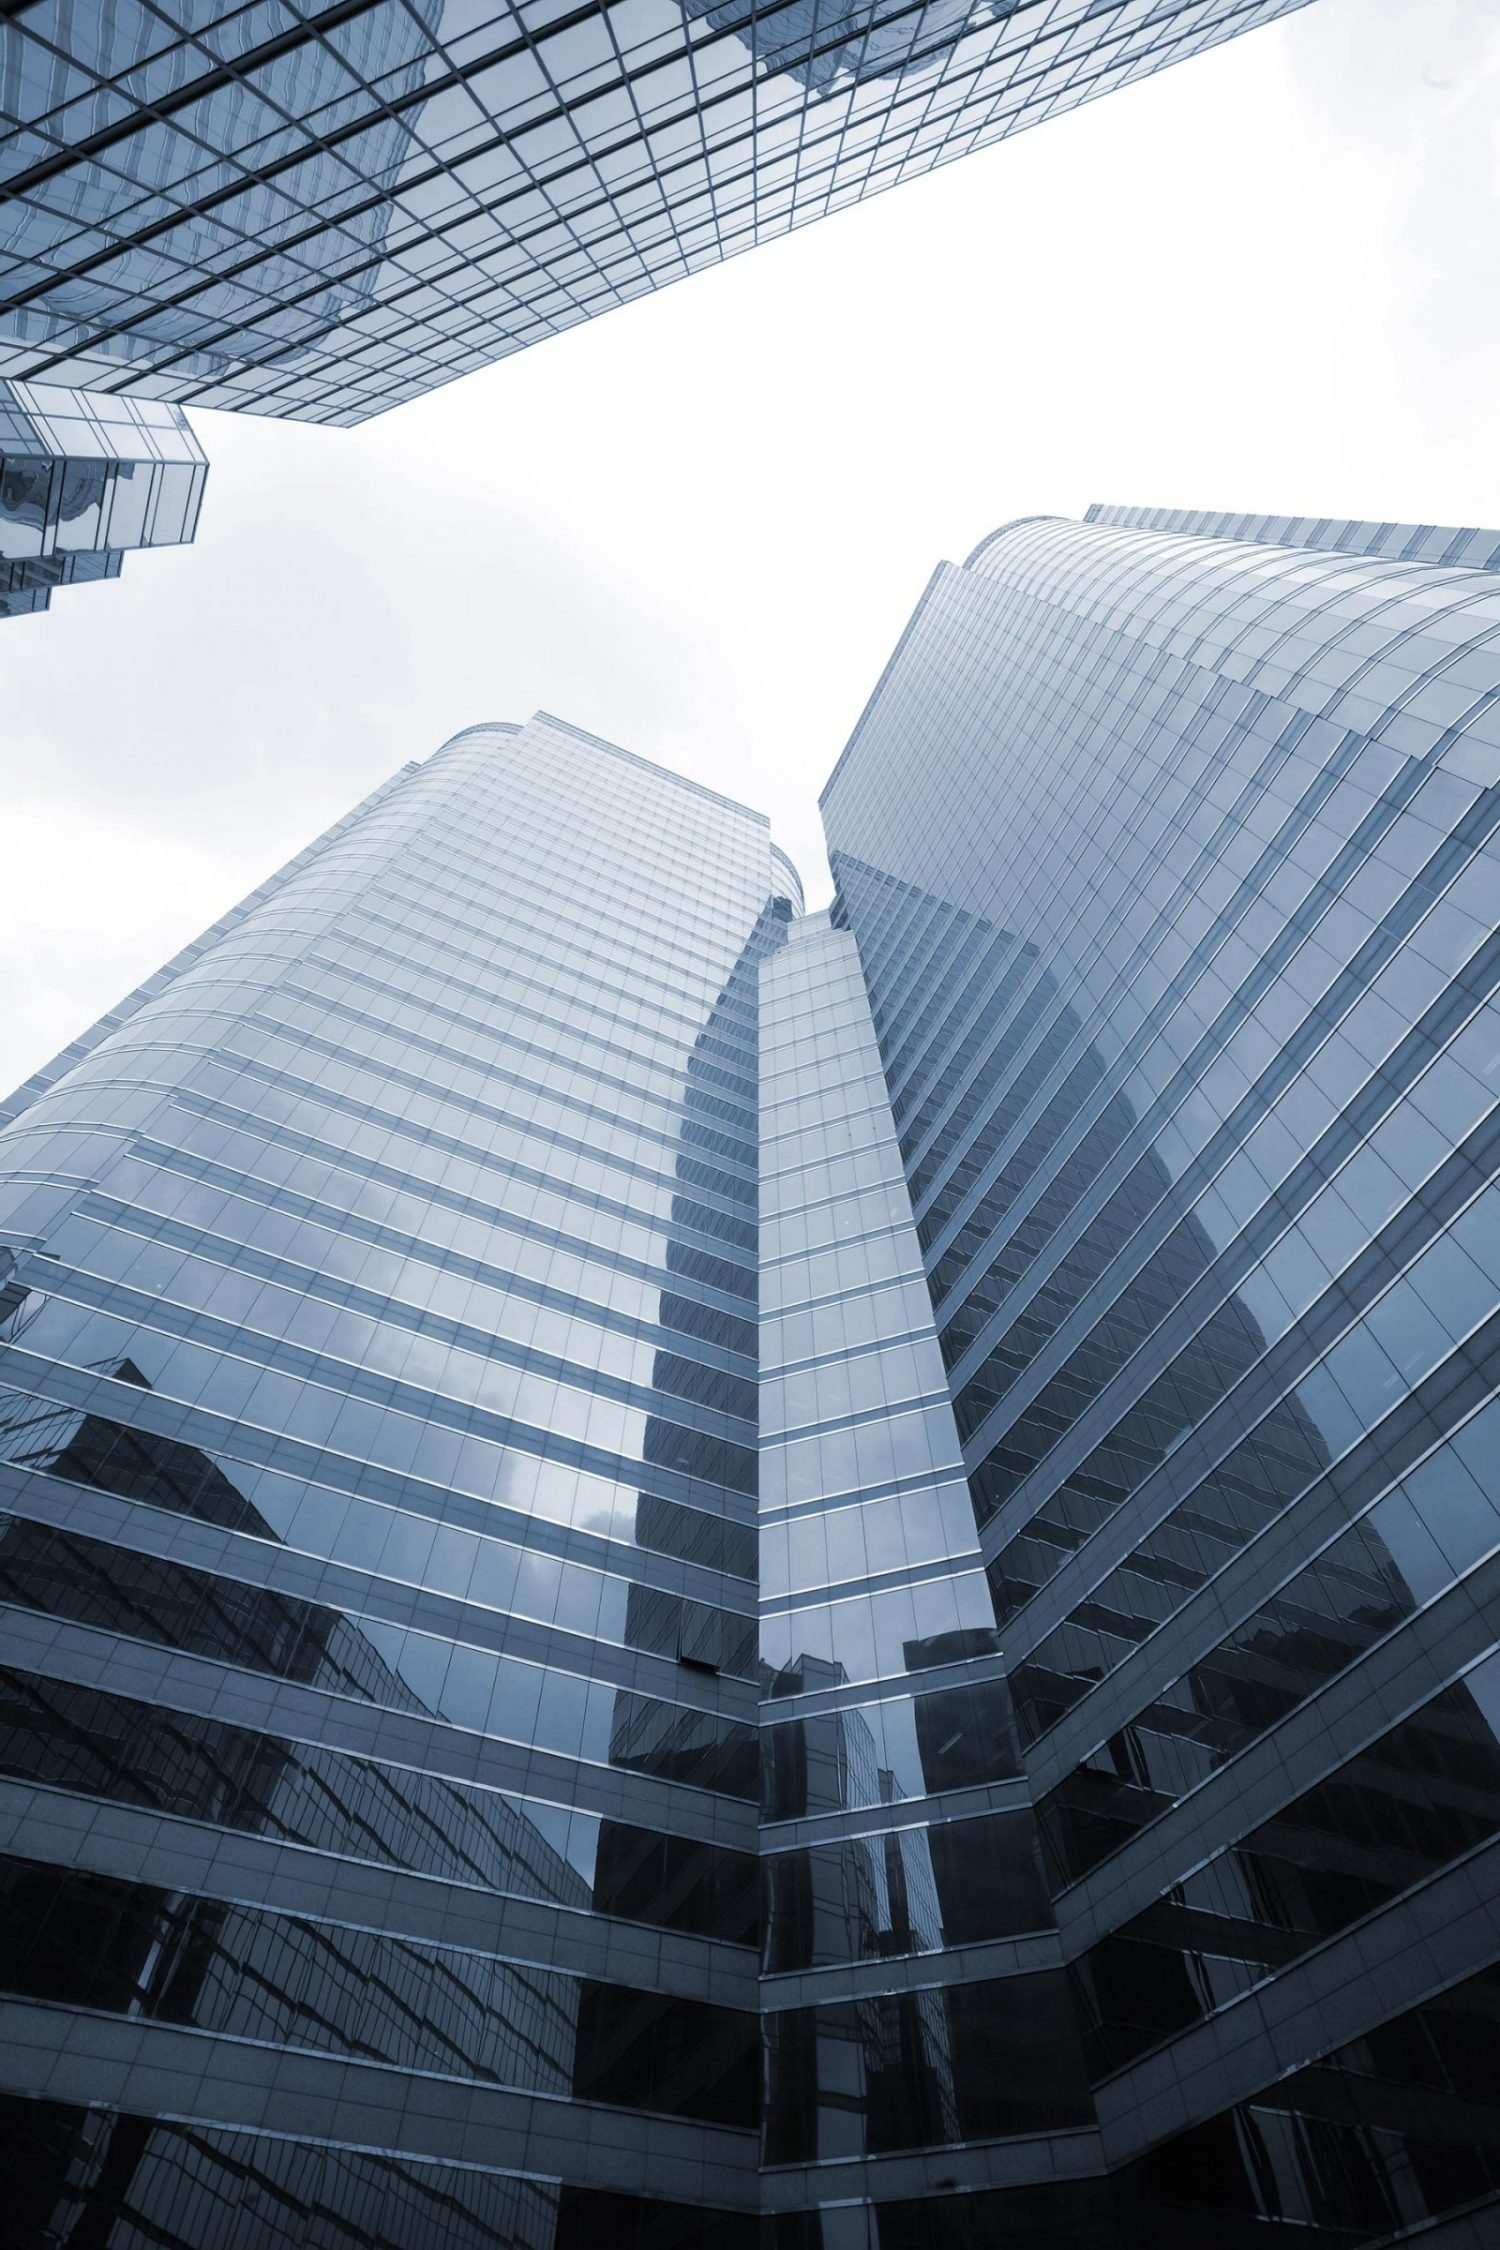 business-buildings-PPXLM5W